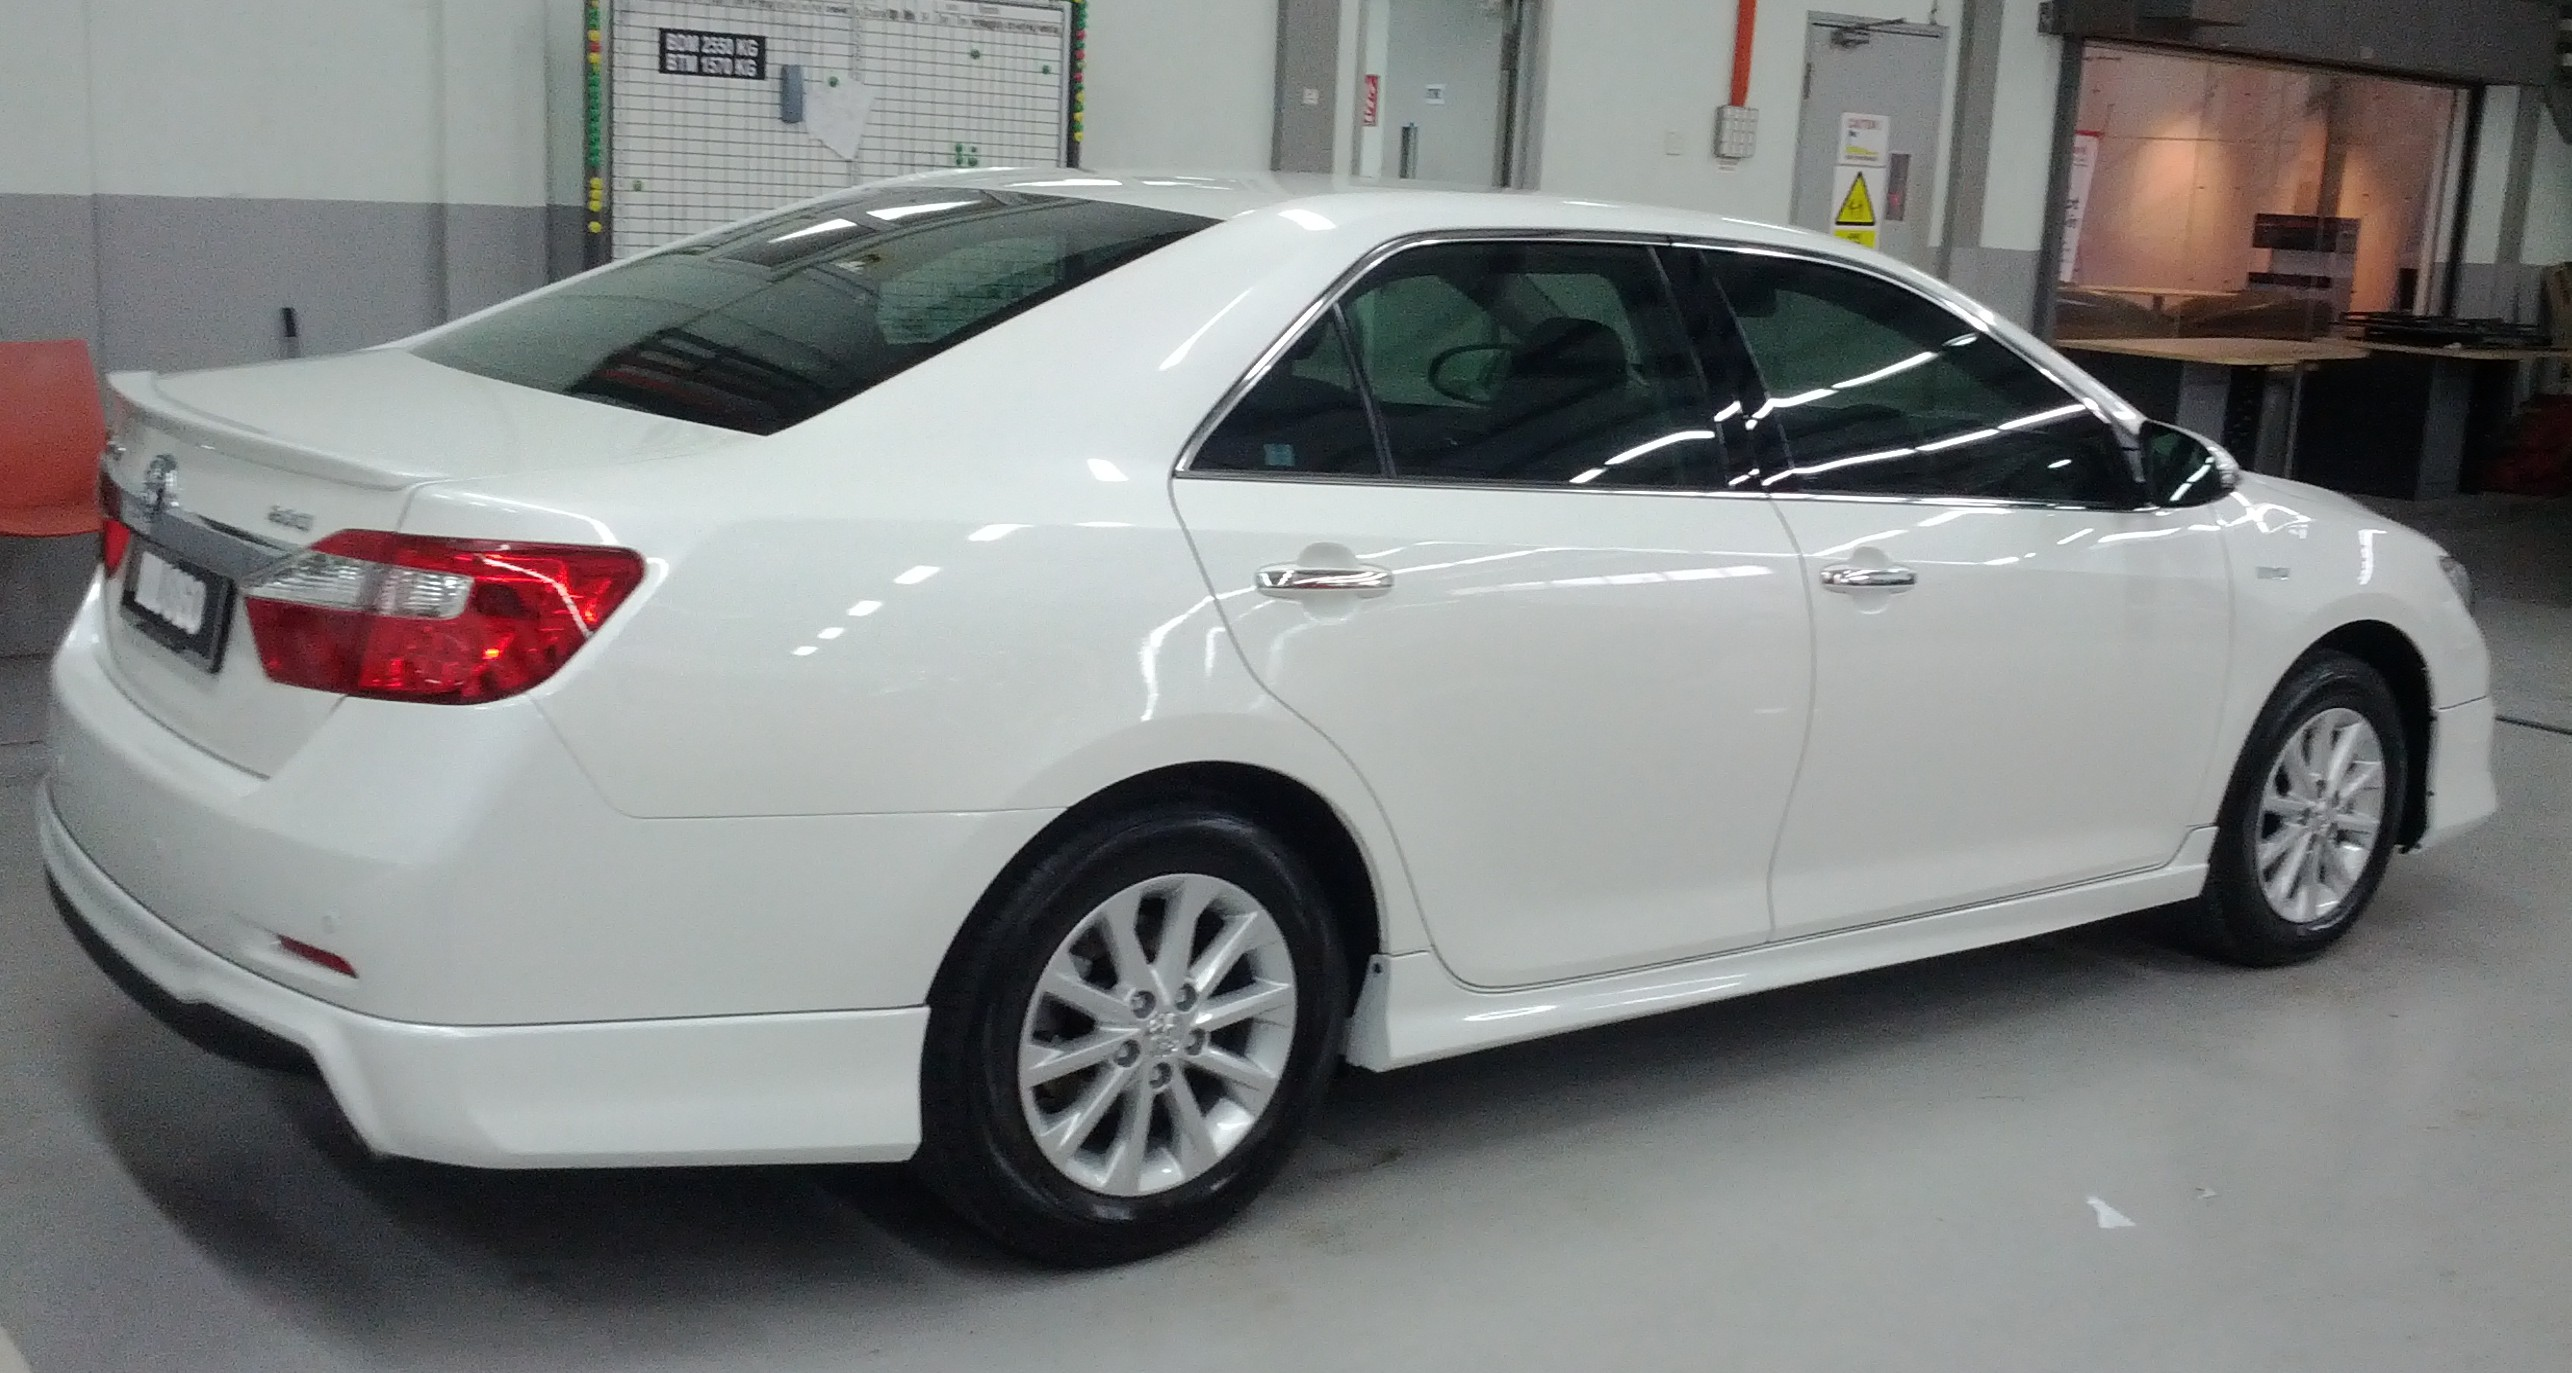 Toyota Camry XV50 snapped with aerokit at showrooms Image 109516